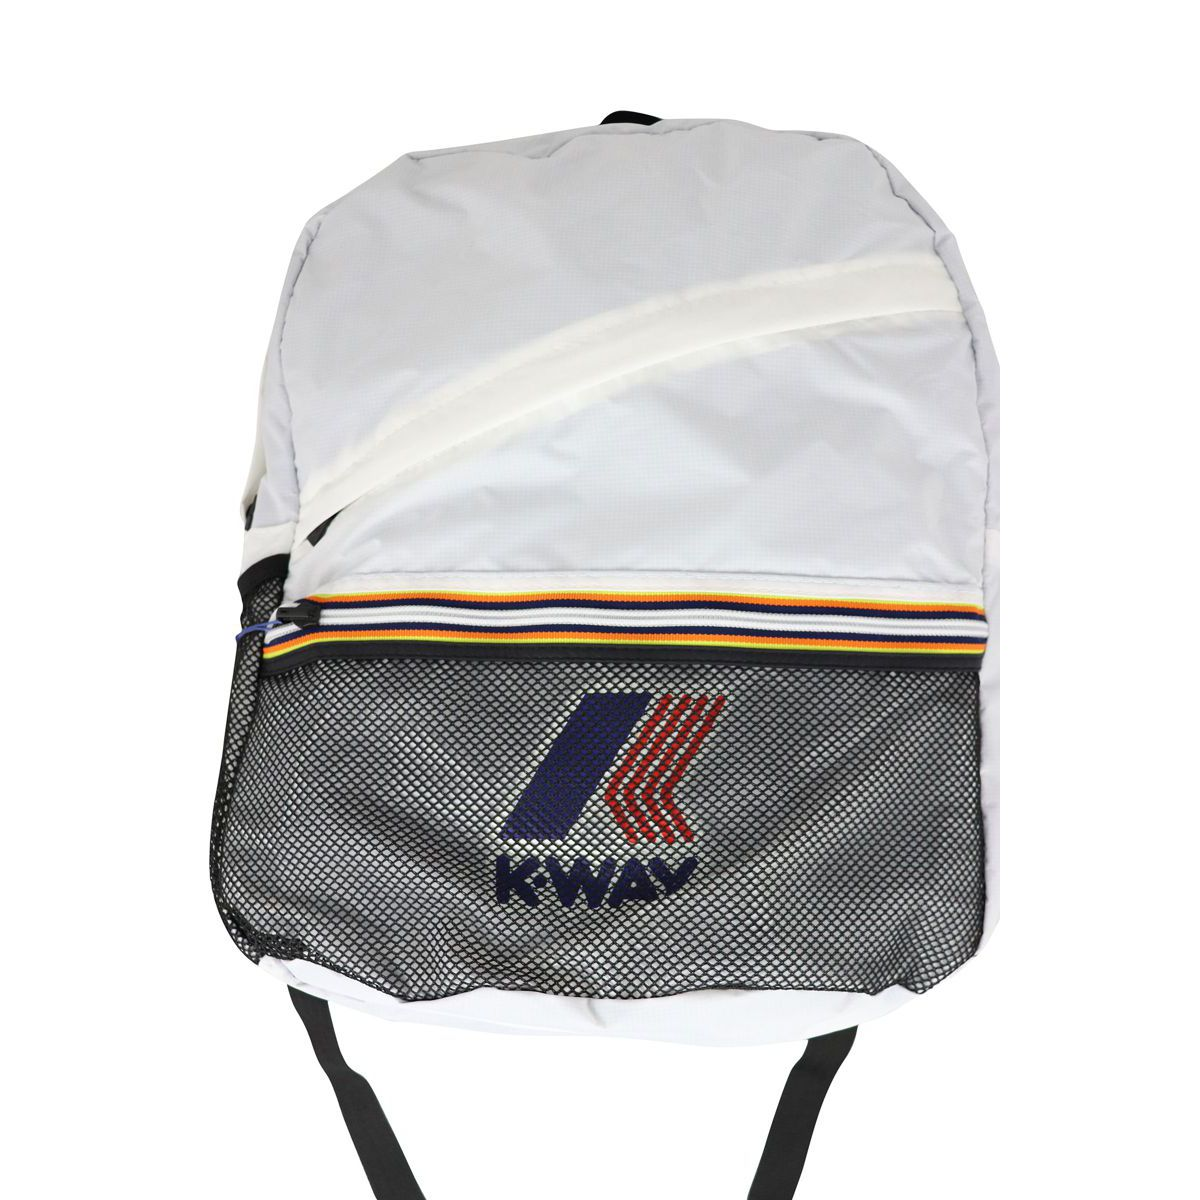 LE VRAI resealable backpack White K-Way